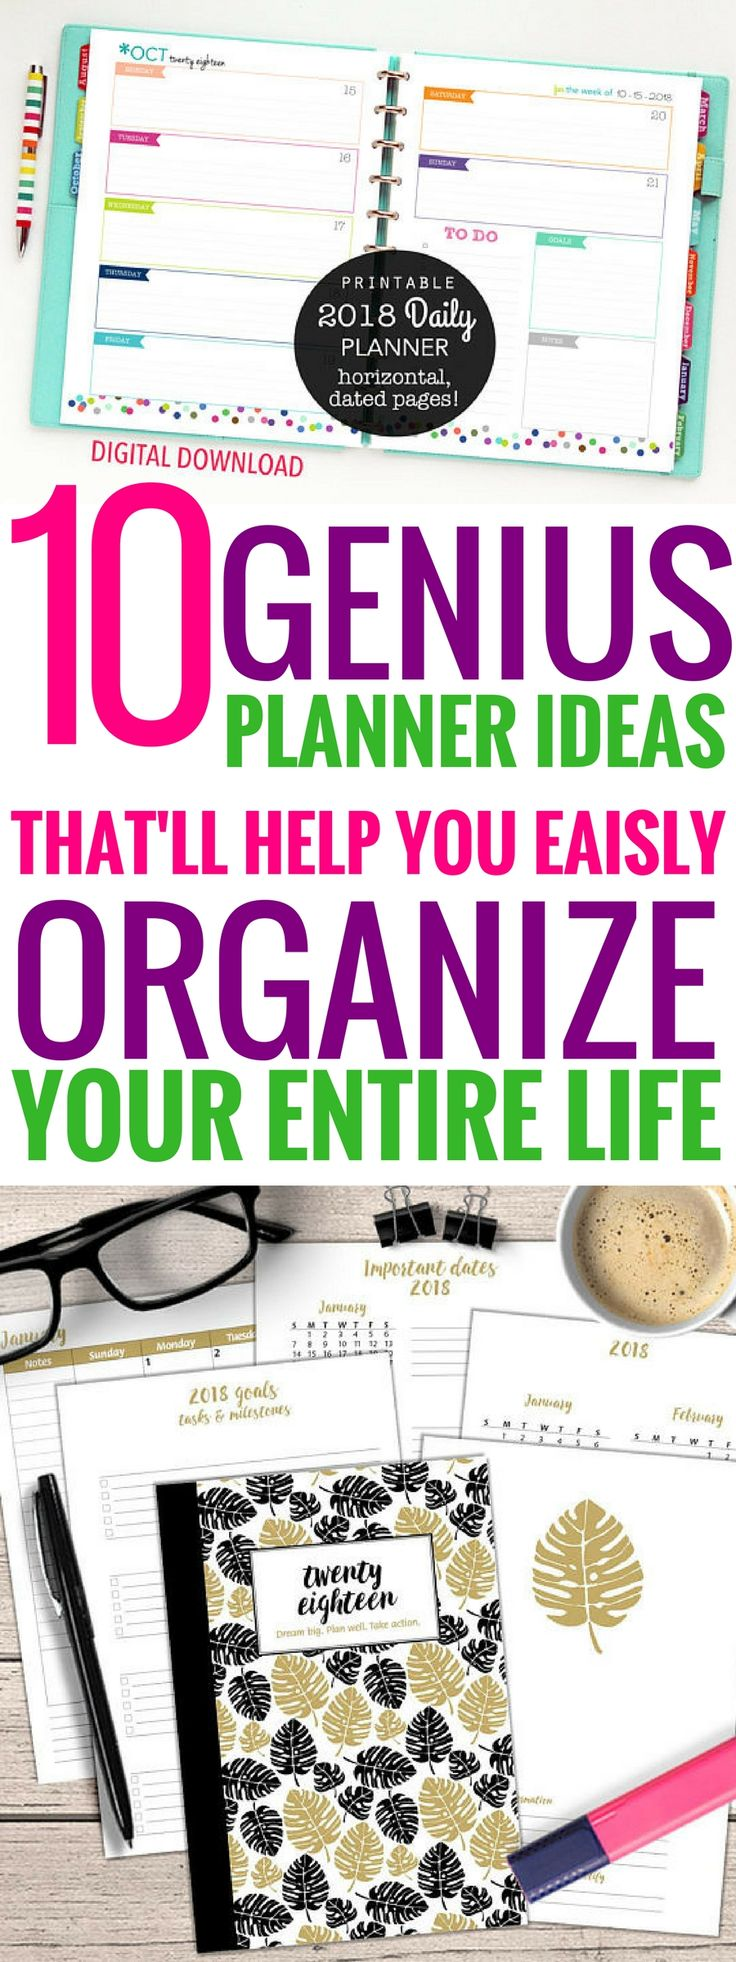 These 10 planner printables are THE BEST! I'm so glad I found these great printables1 Now I can organize my entire life this year! Definitely pinning! #planner #printables #organization